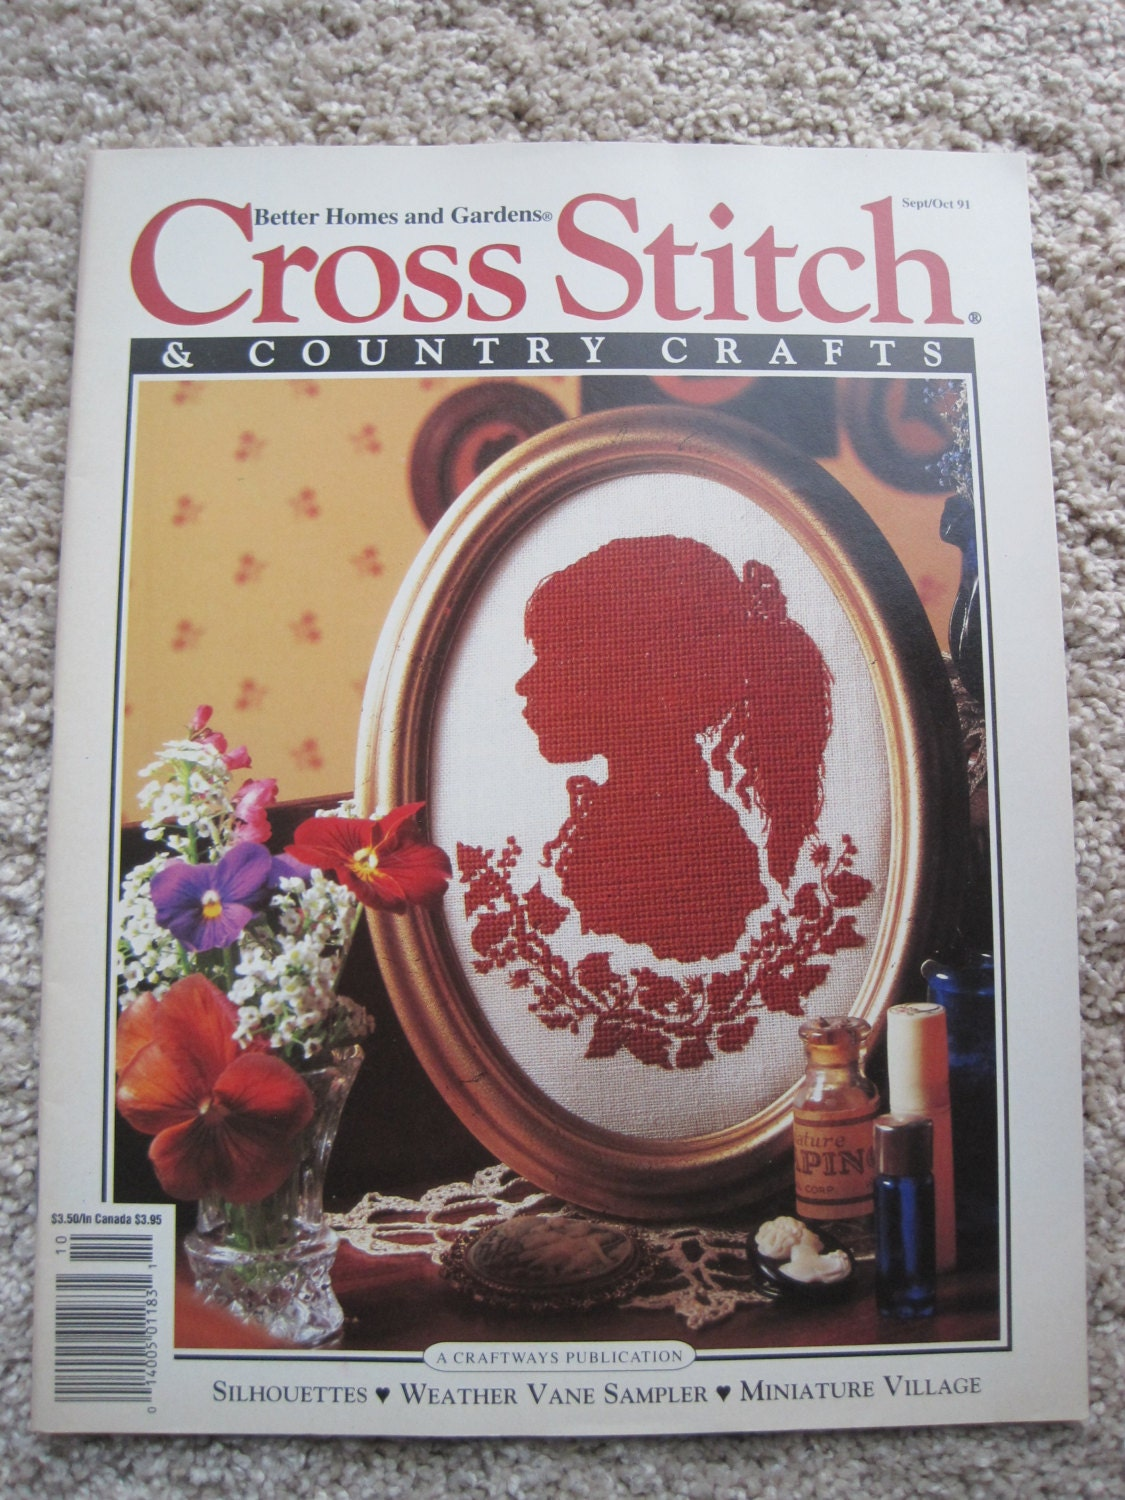 Cross stitch and country crafts magazine back issues - Cross Stitch Country Crafts Magazine Sept Oct 1991